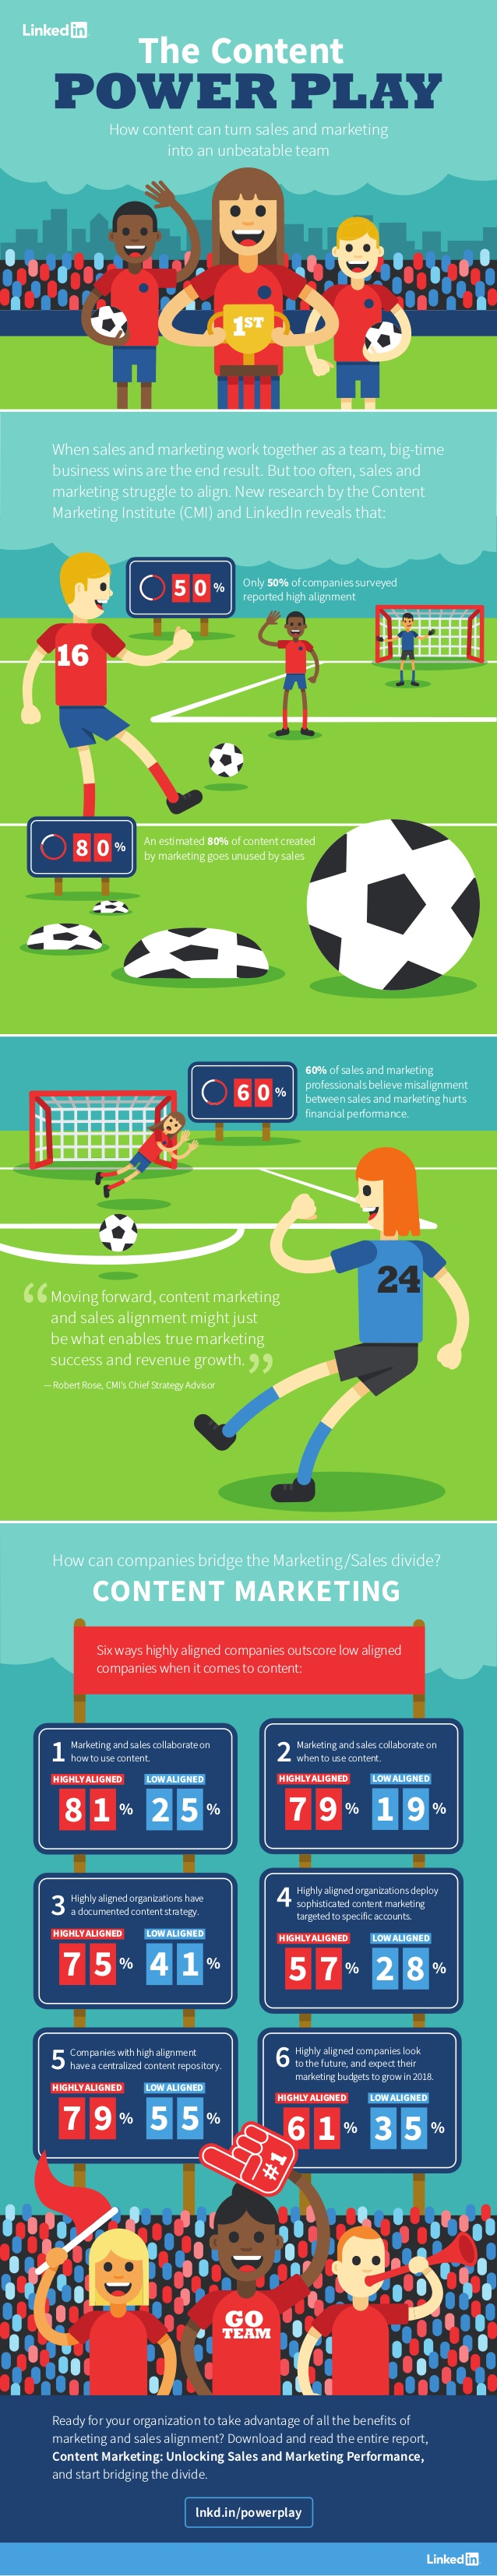 Overcome the Challenge of Aligning Marketing and Sales Content: Create Content That Bring the Teams Together (INFOGRAPHIC)